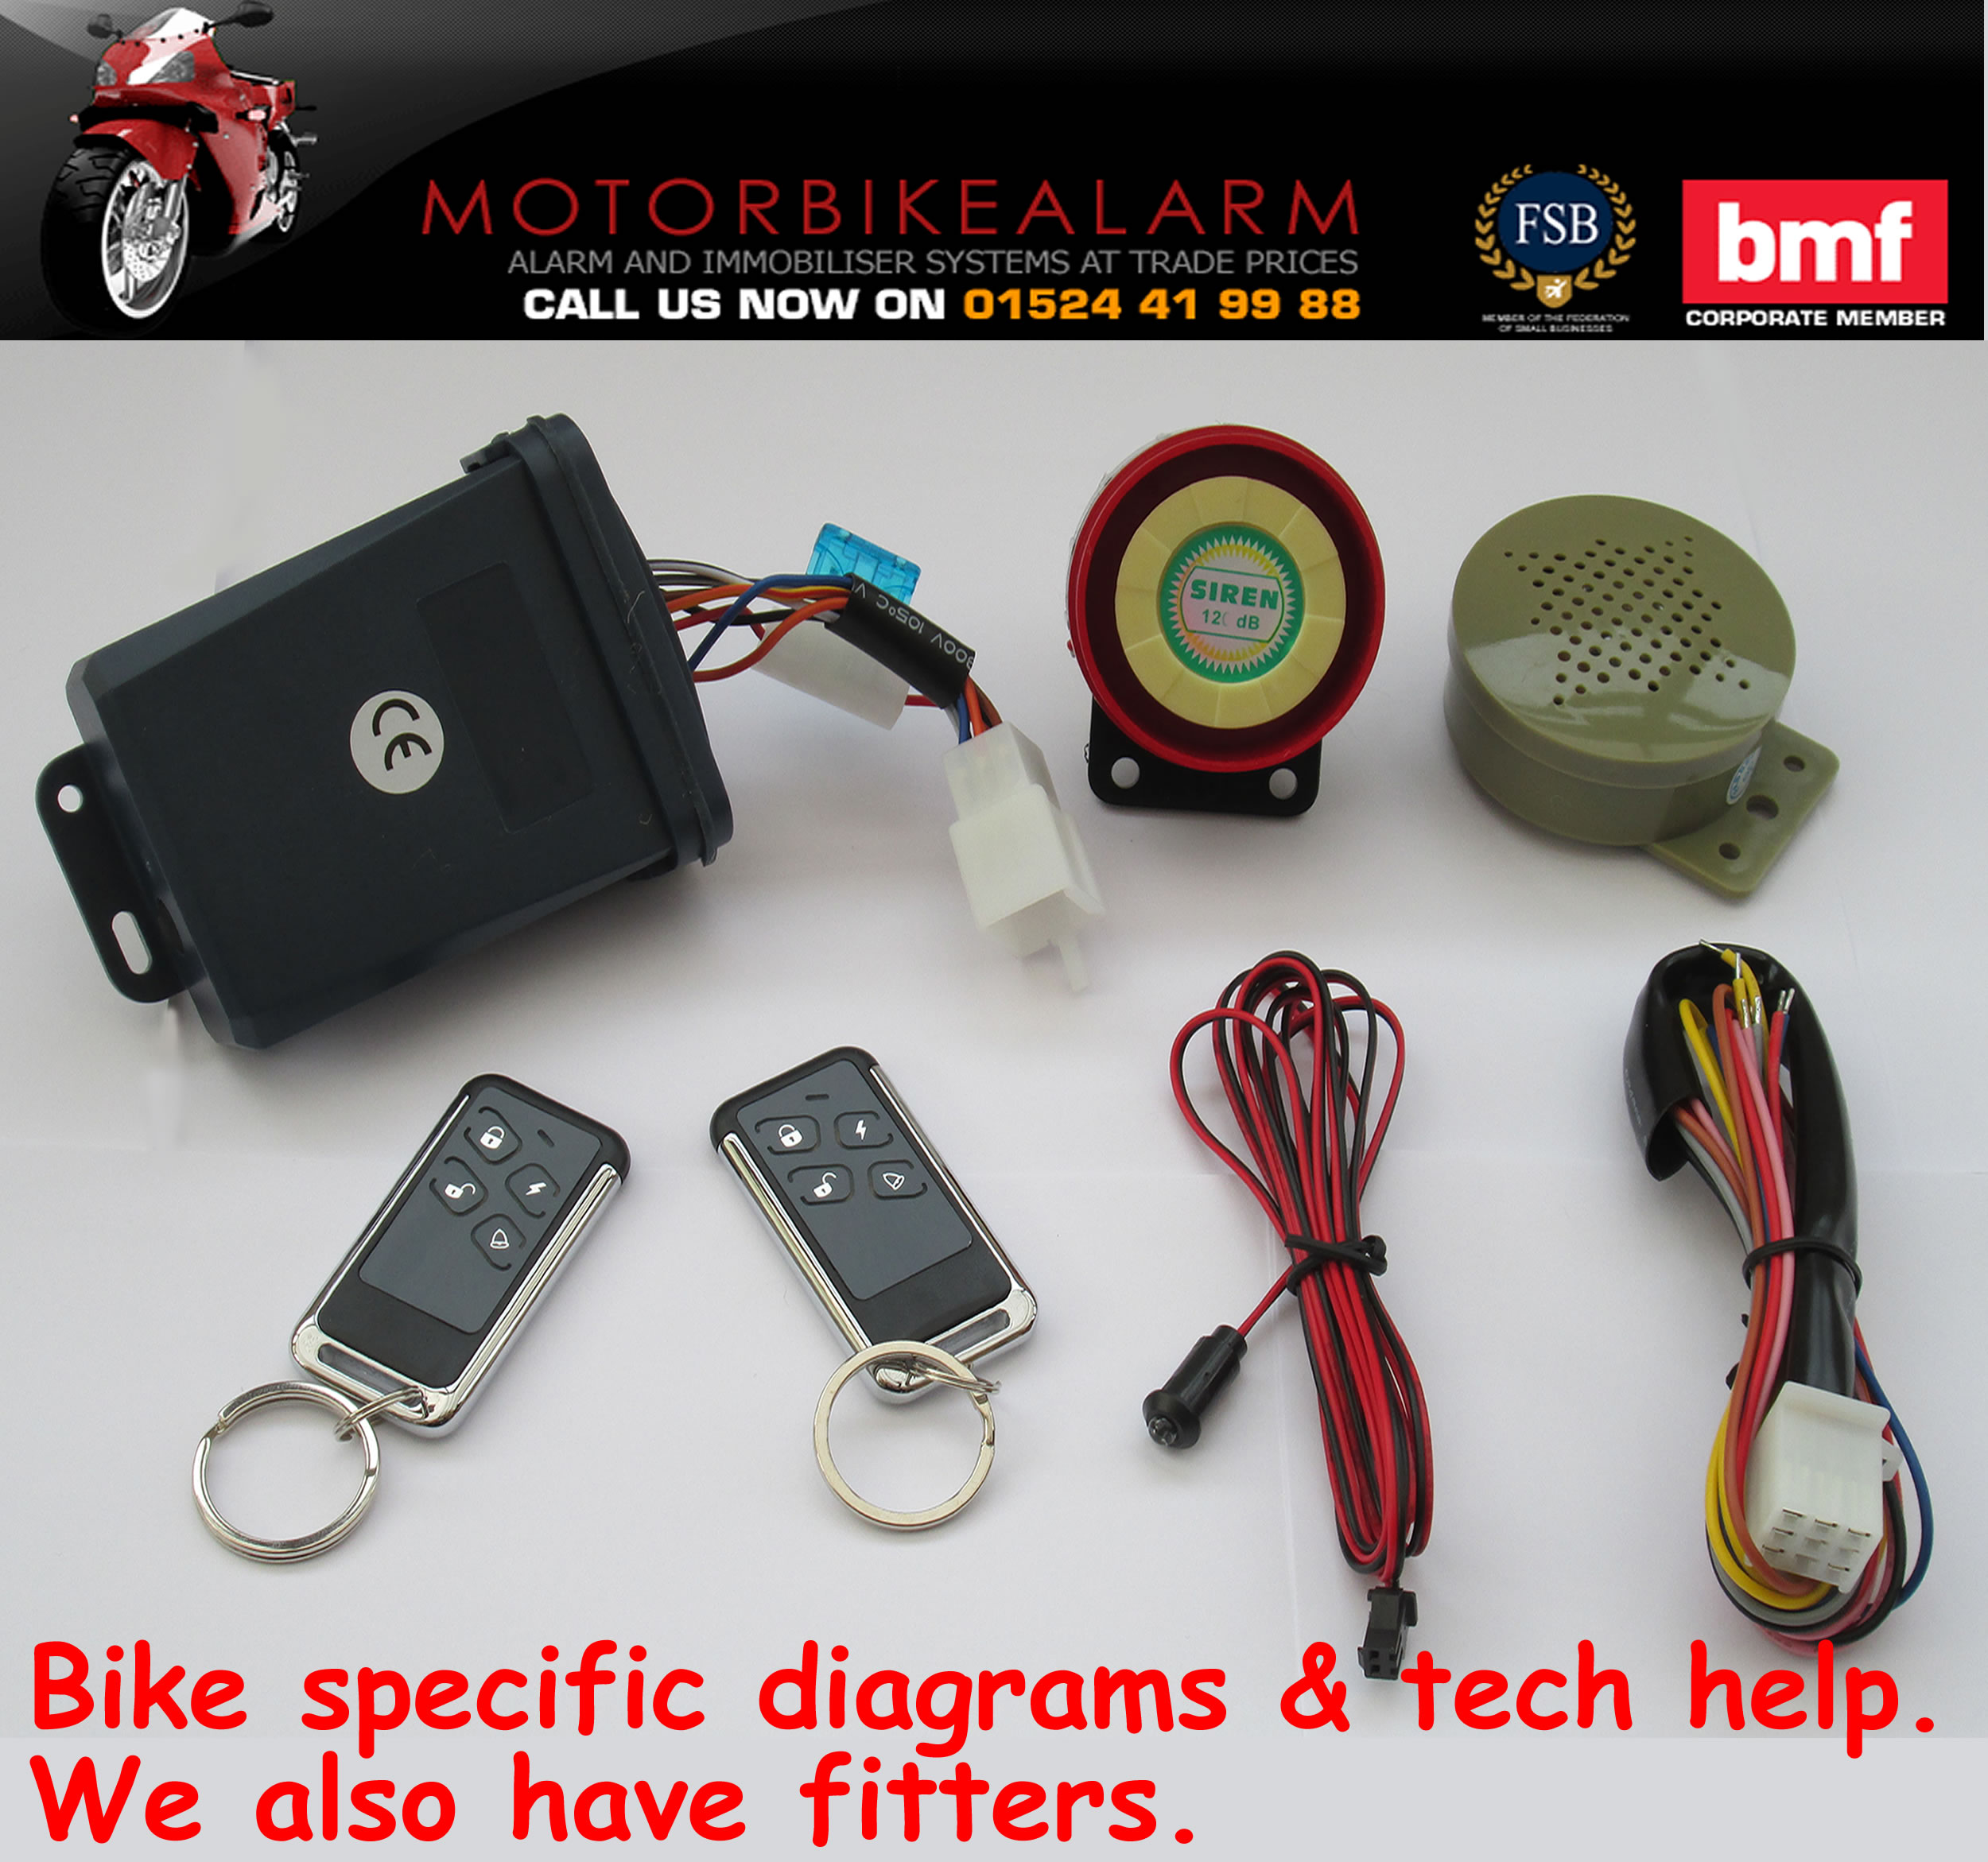 c11talkebay ncs c 11 talking motorbike alarm and immobiliser system cyclone motorcycle alarm wiring diagram at suagrazia.org